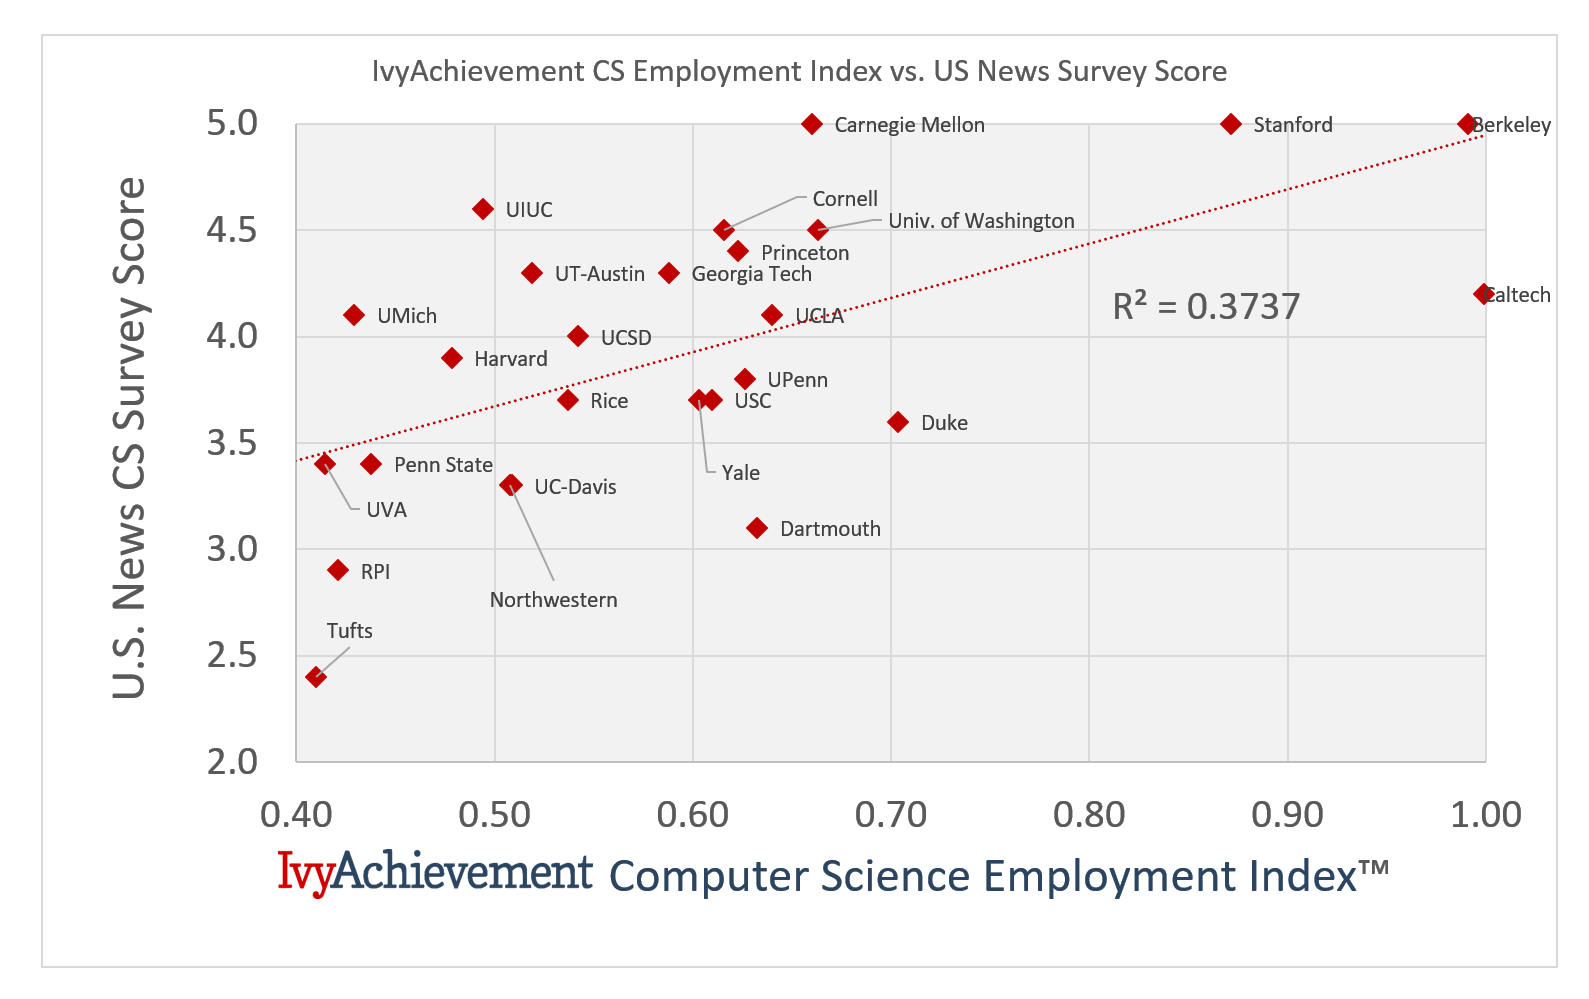 IvyAchievement CS Employment vs US News